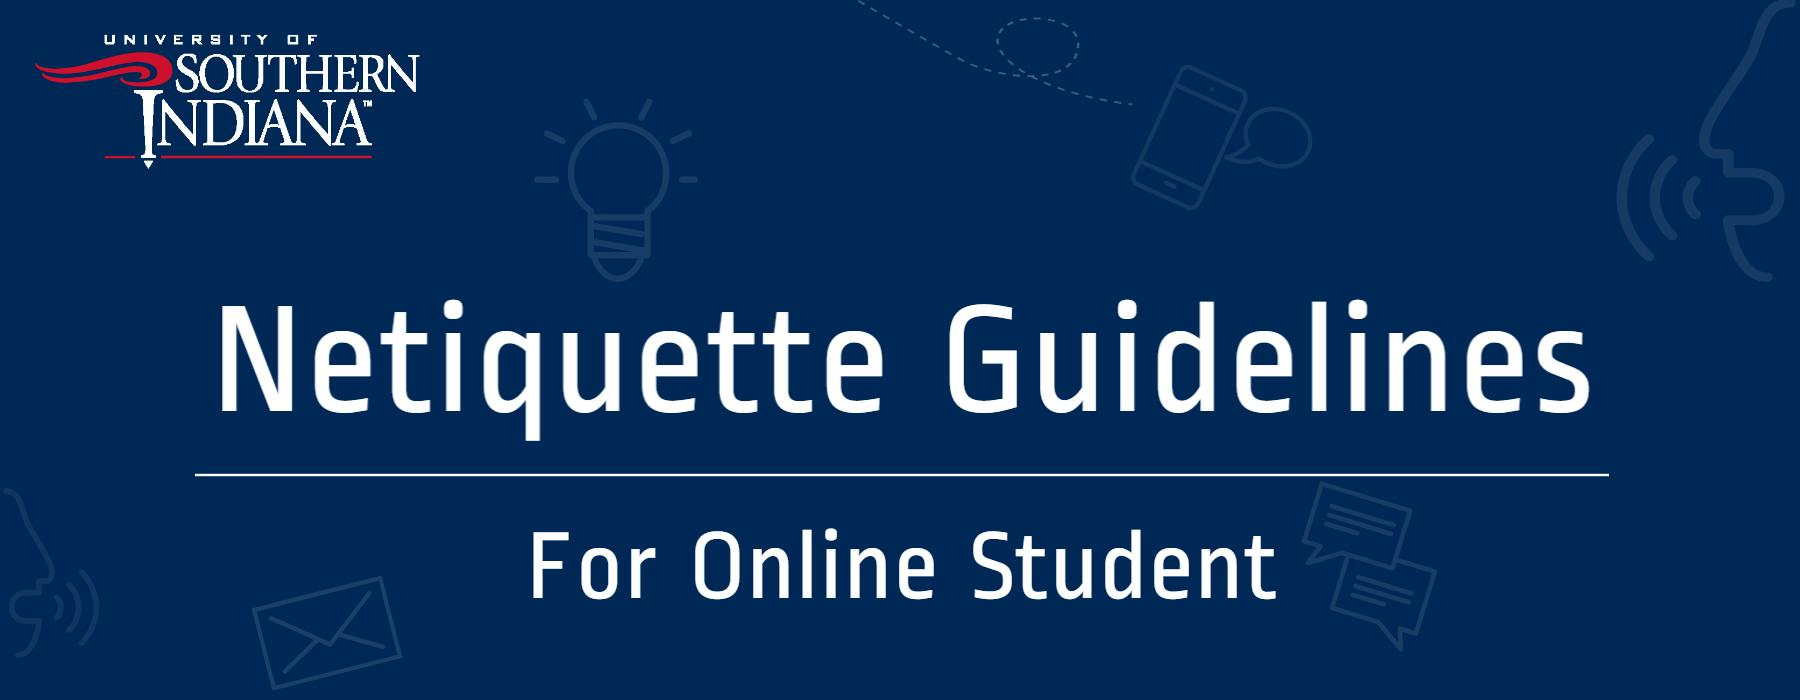 Netiquette Guidelines for Online Student